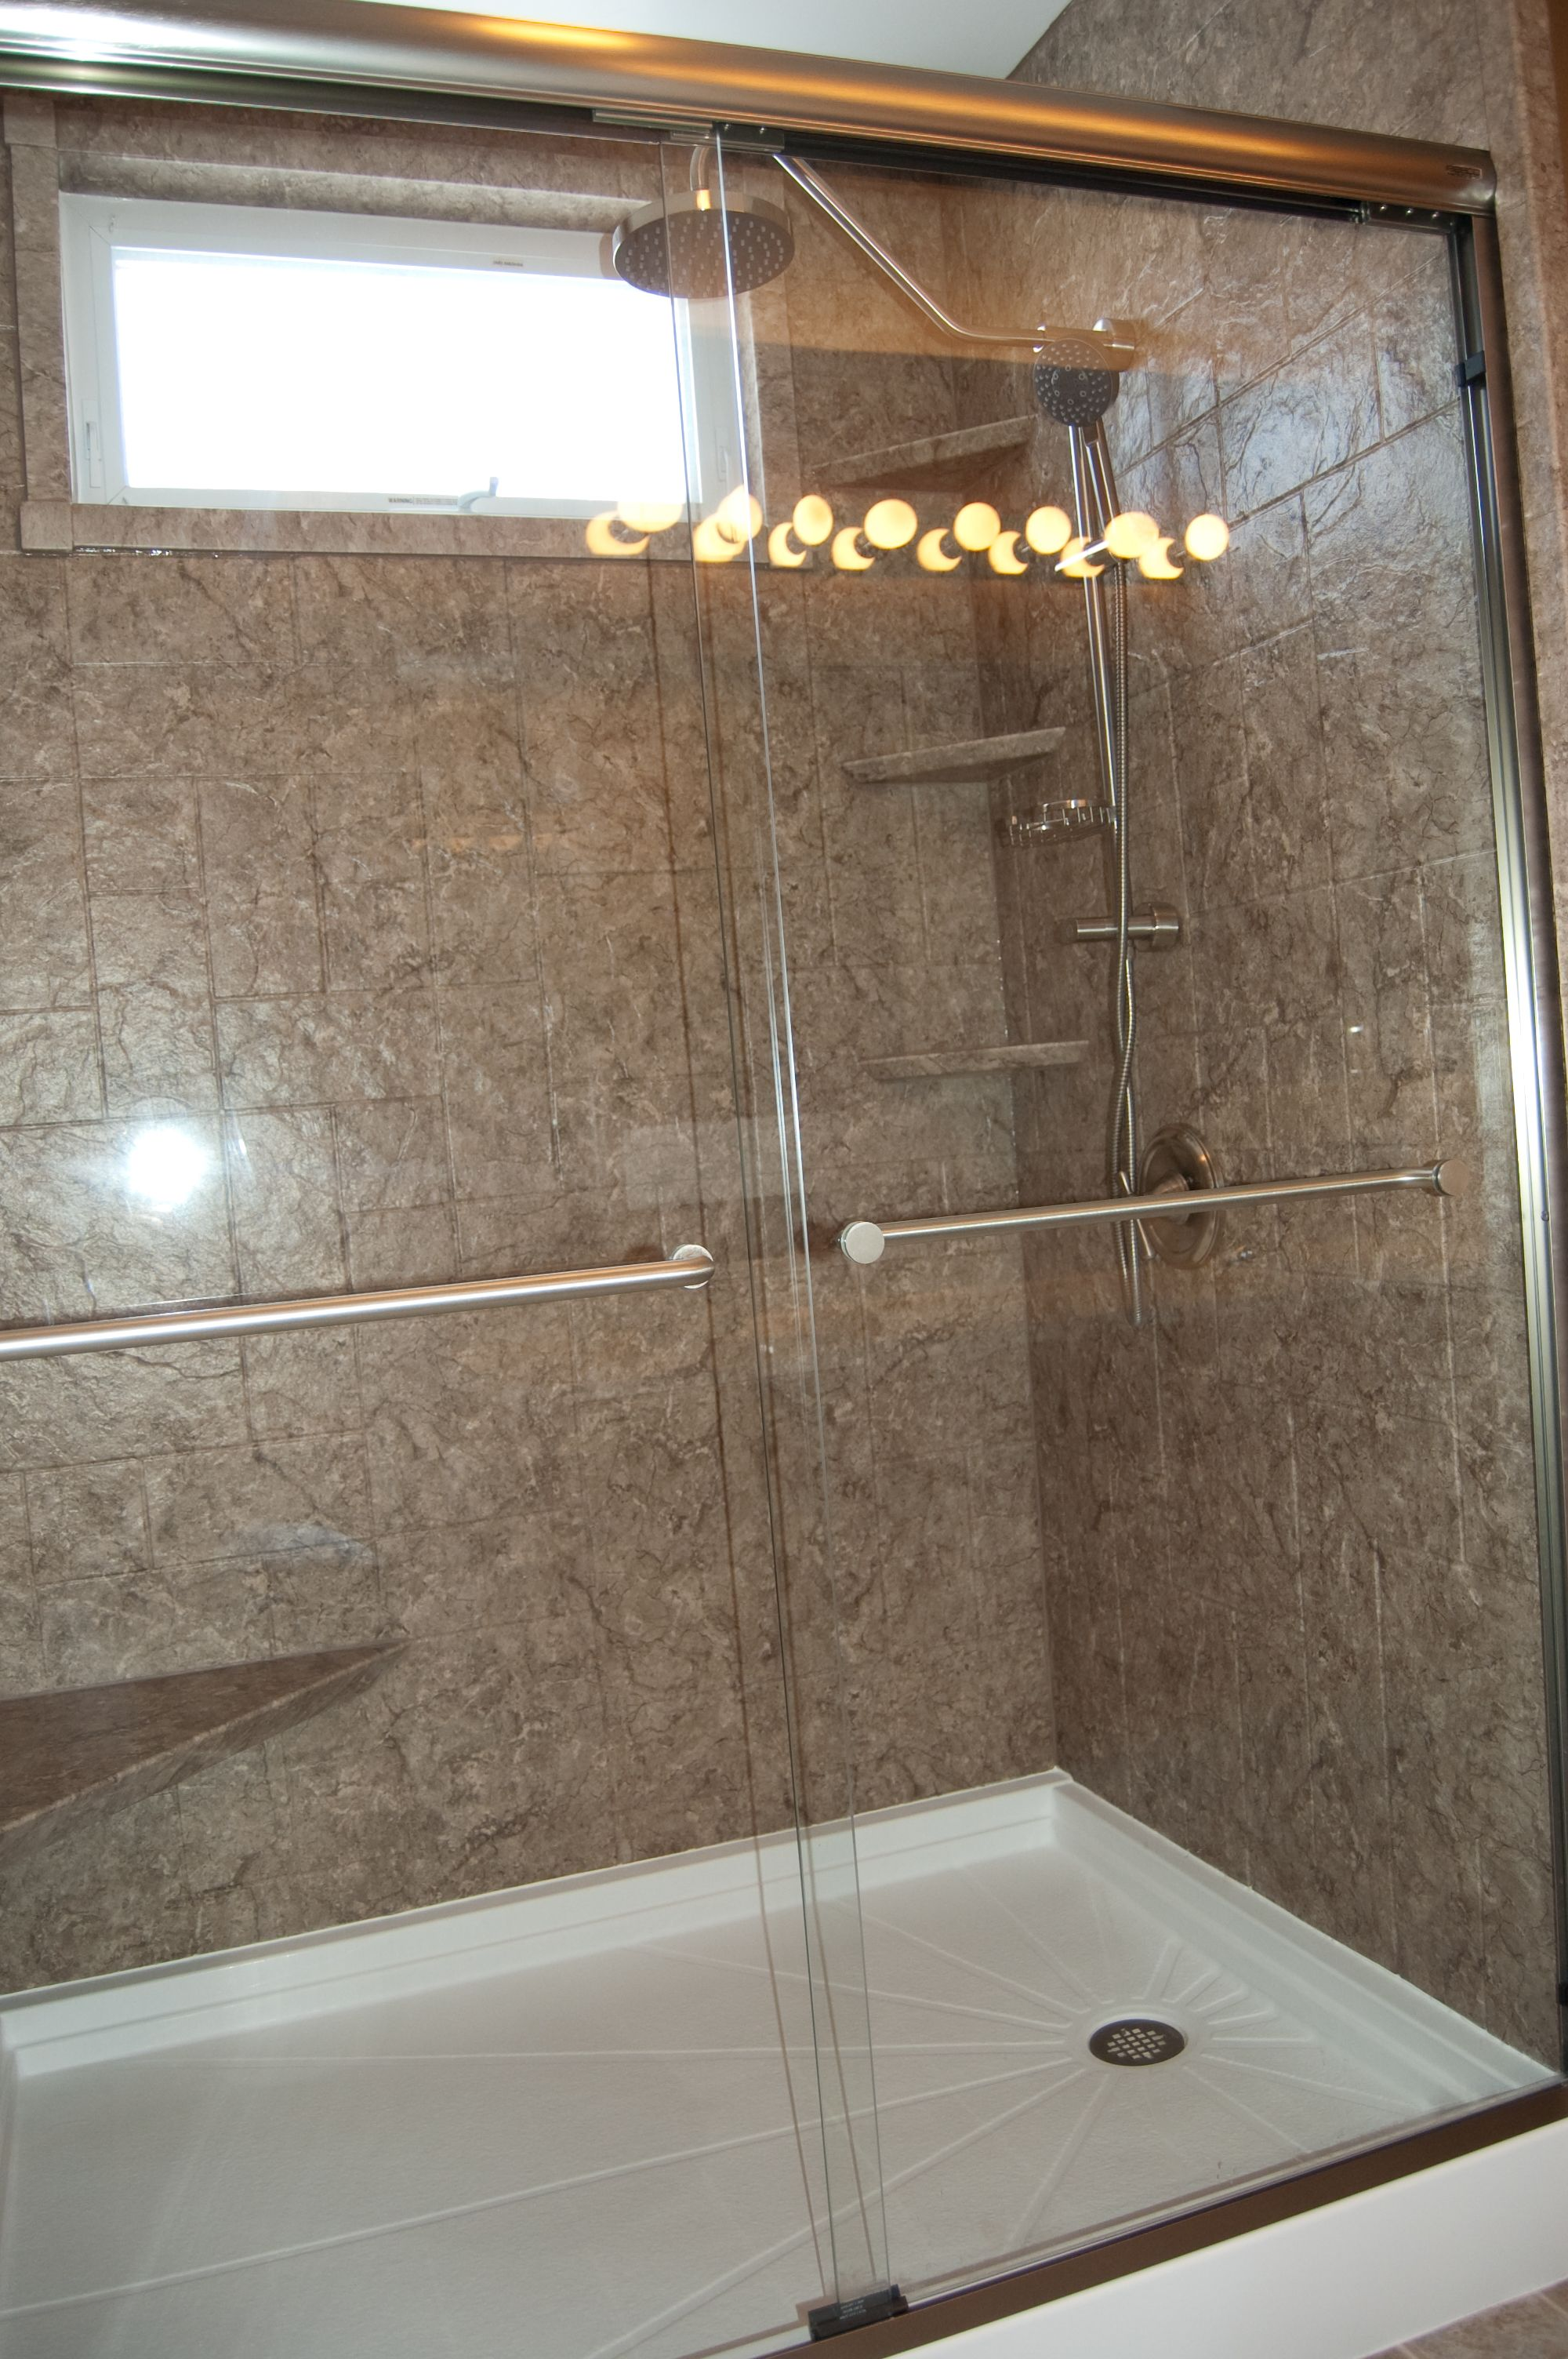 New Shower Installed By Rainbow Bath Our Company Will Come Out And Give